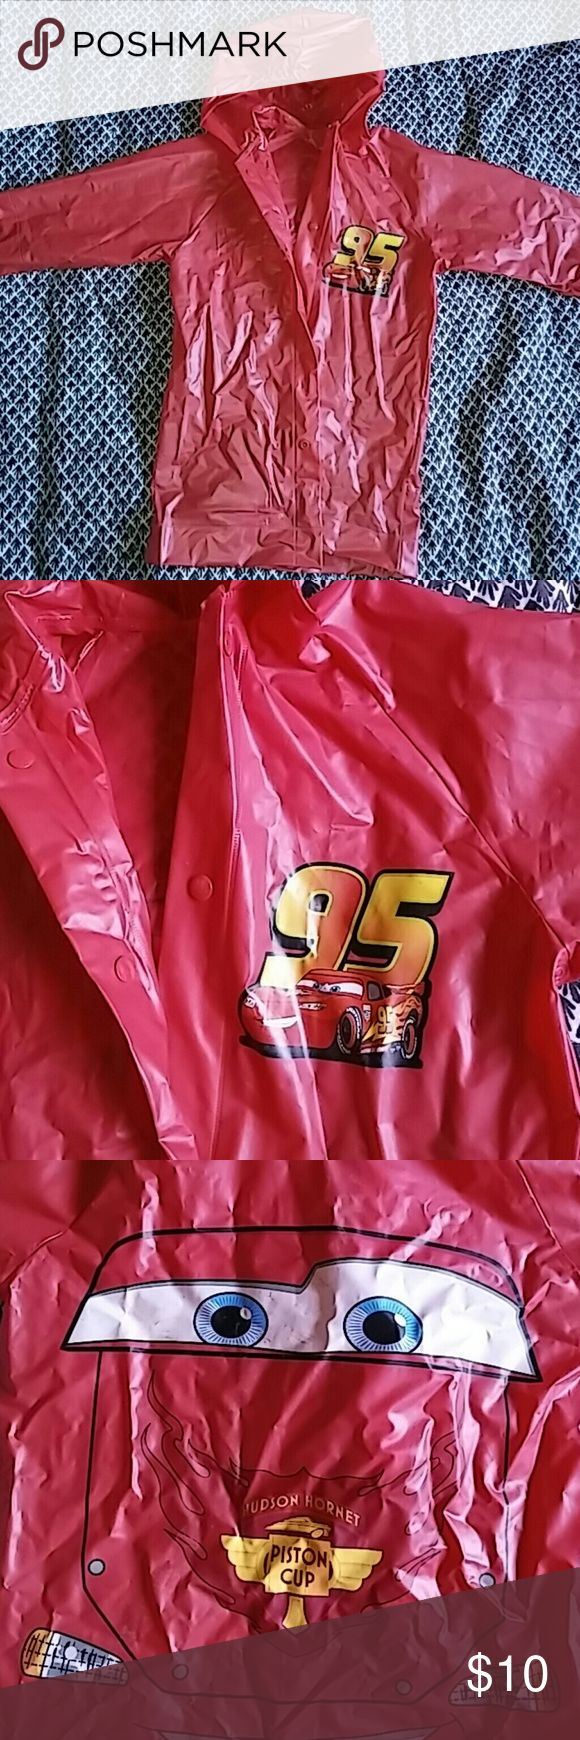 🚘LIGHTNING MCQUEEN! Cute raincoat! + free gift Lightning McQueen red plastic, one smal rip by tag Disney Pixar Jackets & Coats Raincoats